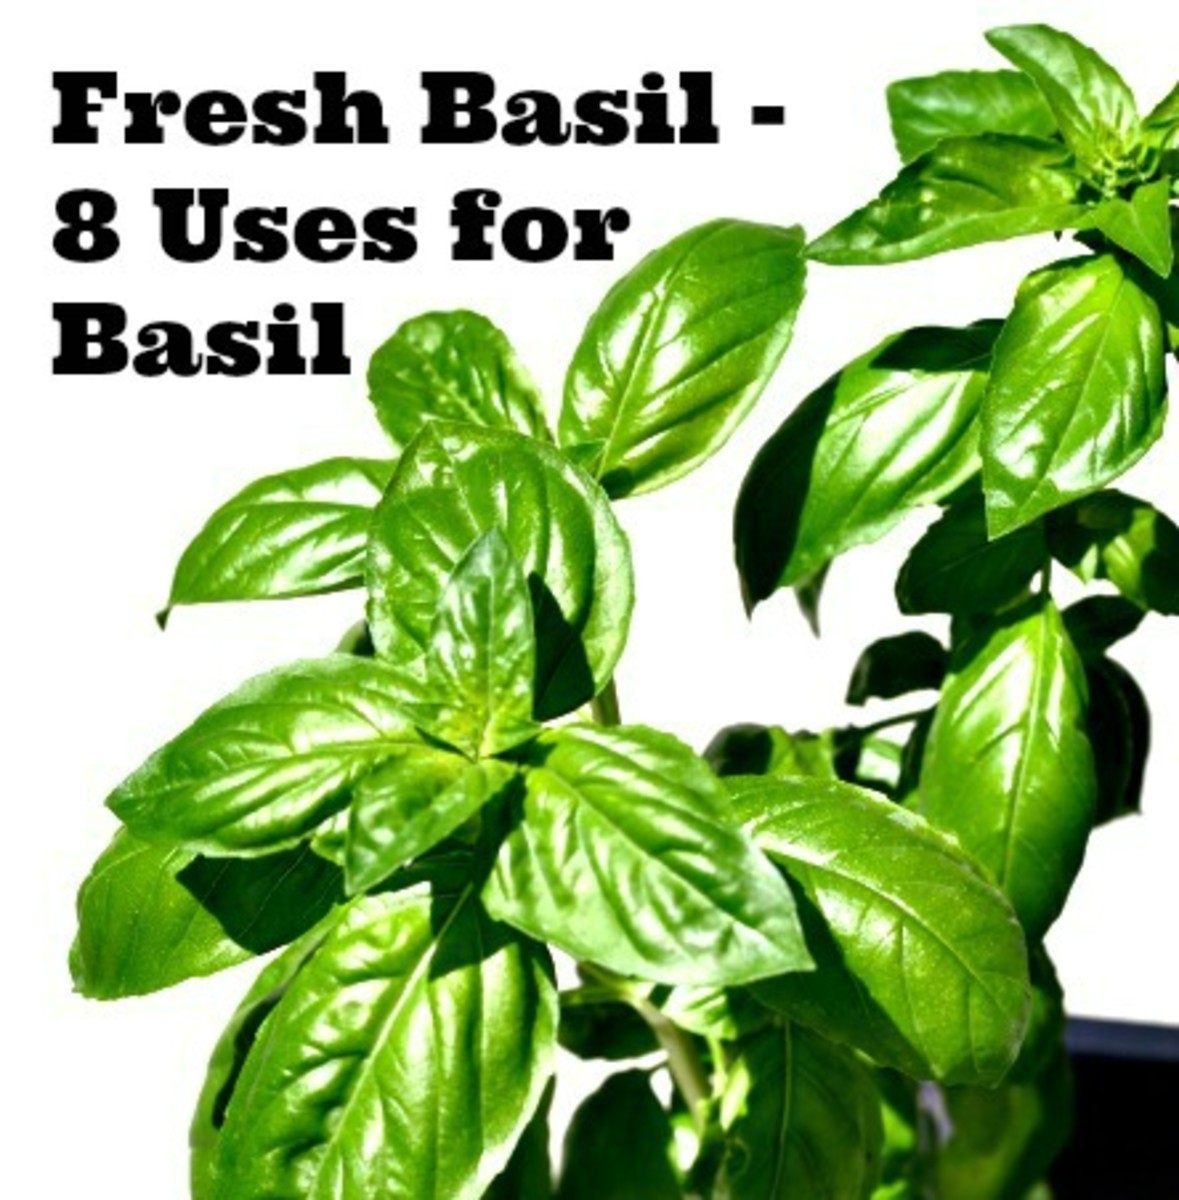 Fresh Basil - 8 Uses for Basil-TodaysMama.com